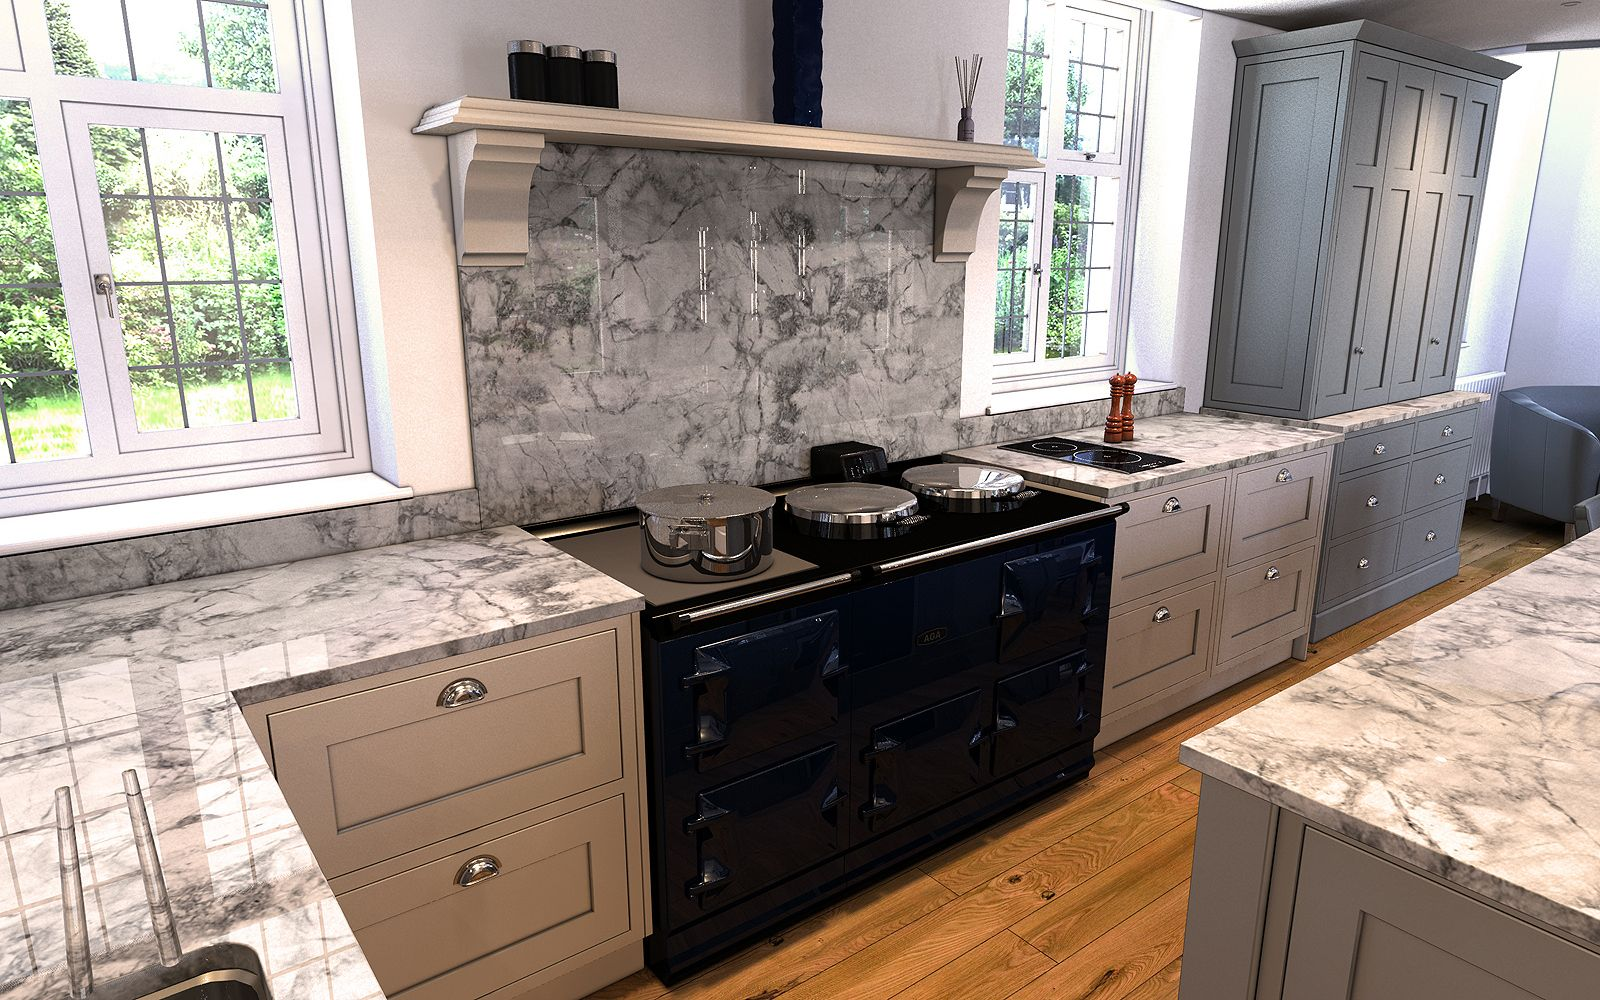 Kitchen Image For Underwood Furniture Www Underwoodfurniture Com Kitchen Images Kitchen Kitchen Cabinets